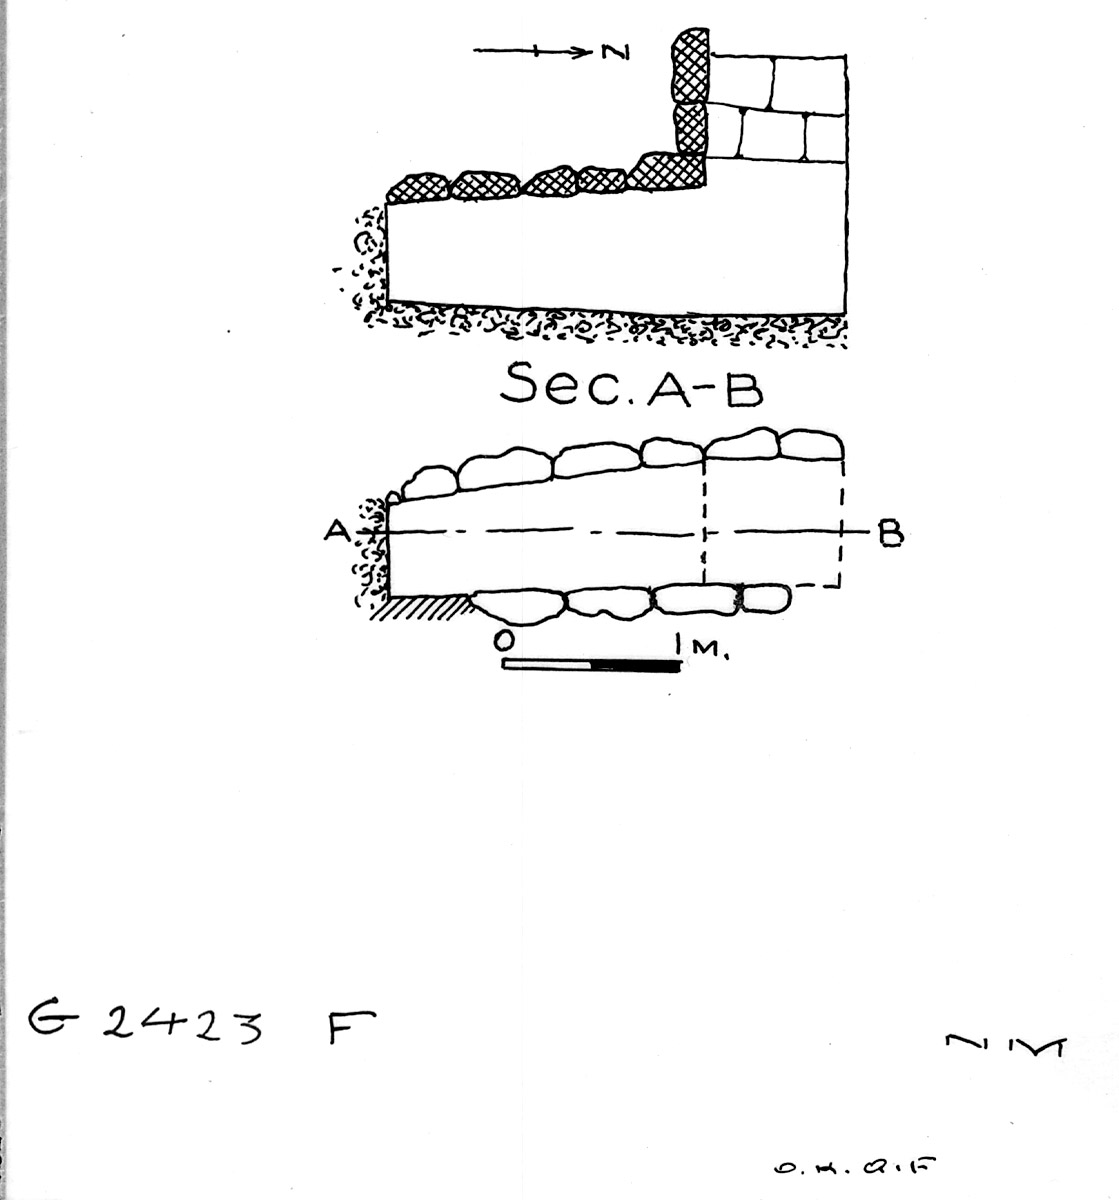 Maps and plans: G 2423, Shaft F